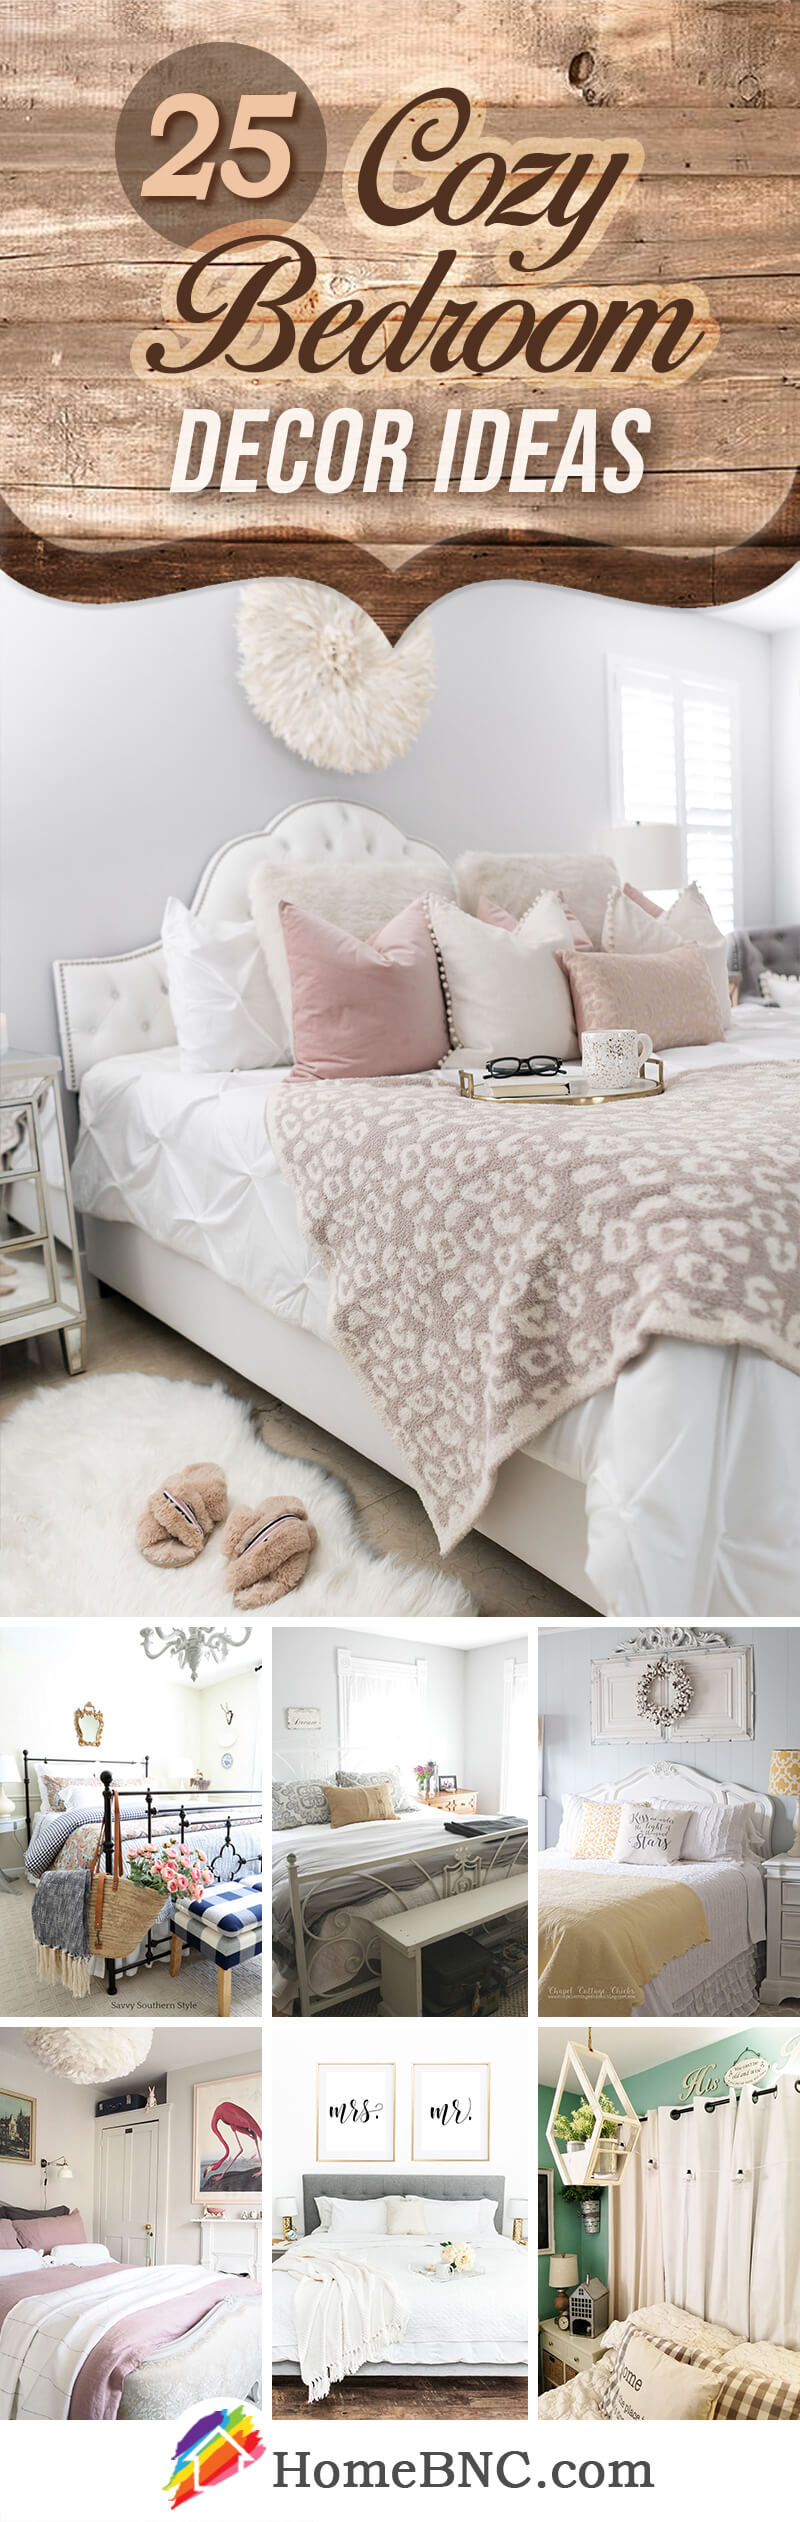 Gentil 25 Comfy And Cozy Bedroom Decor Ideas That Are Impossible To Not Love